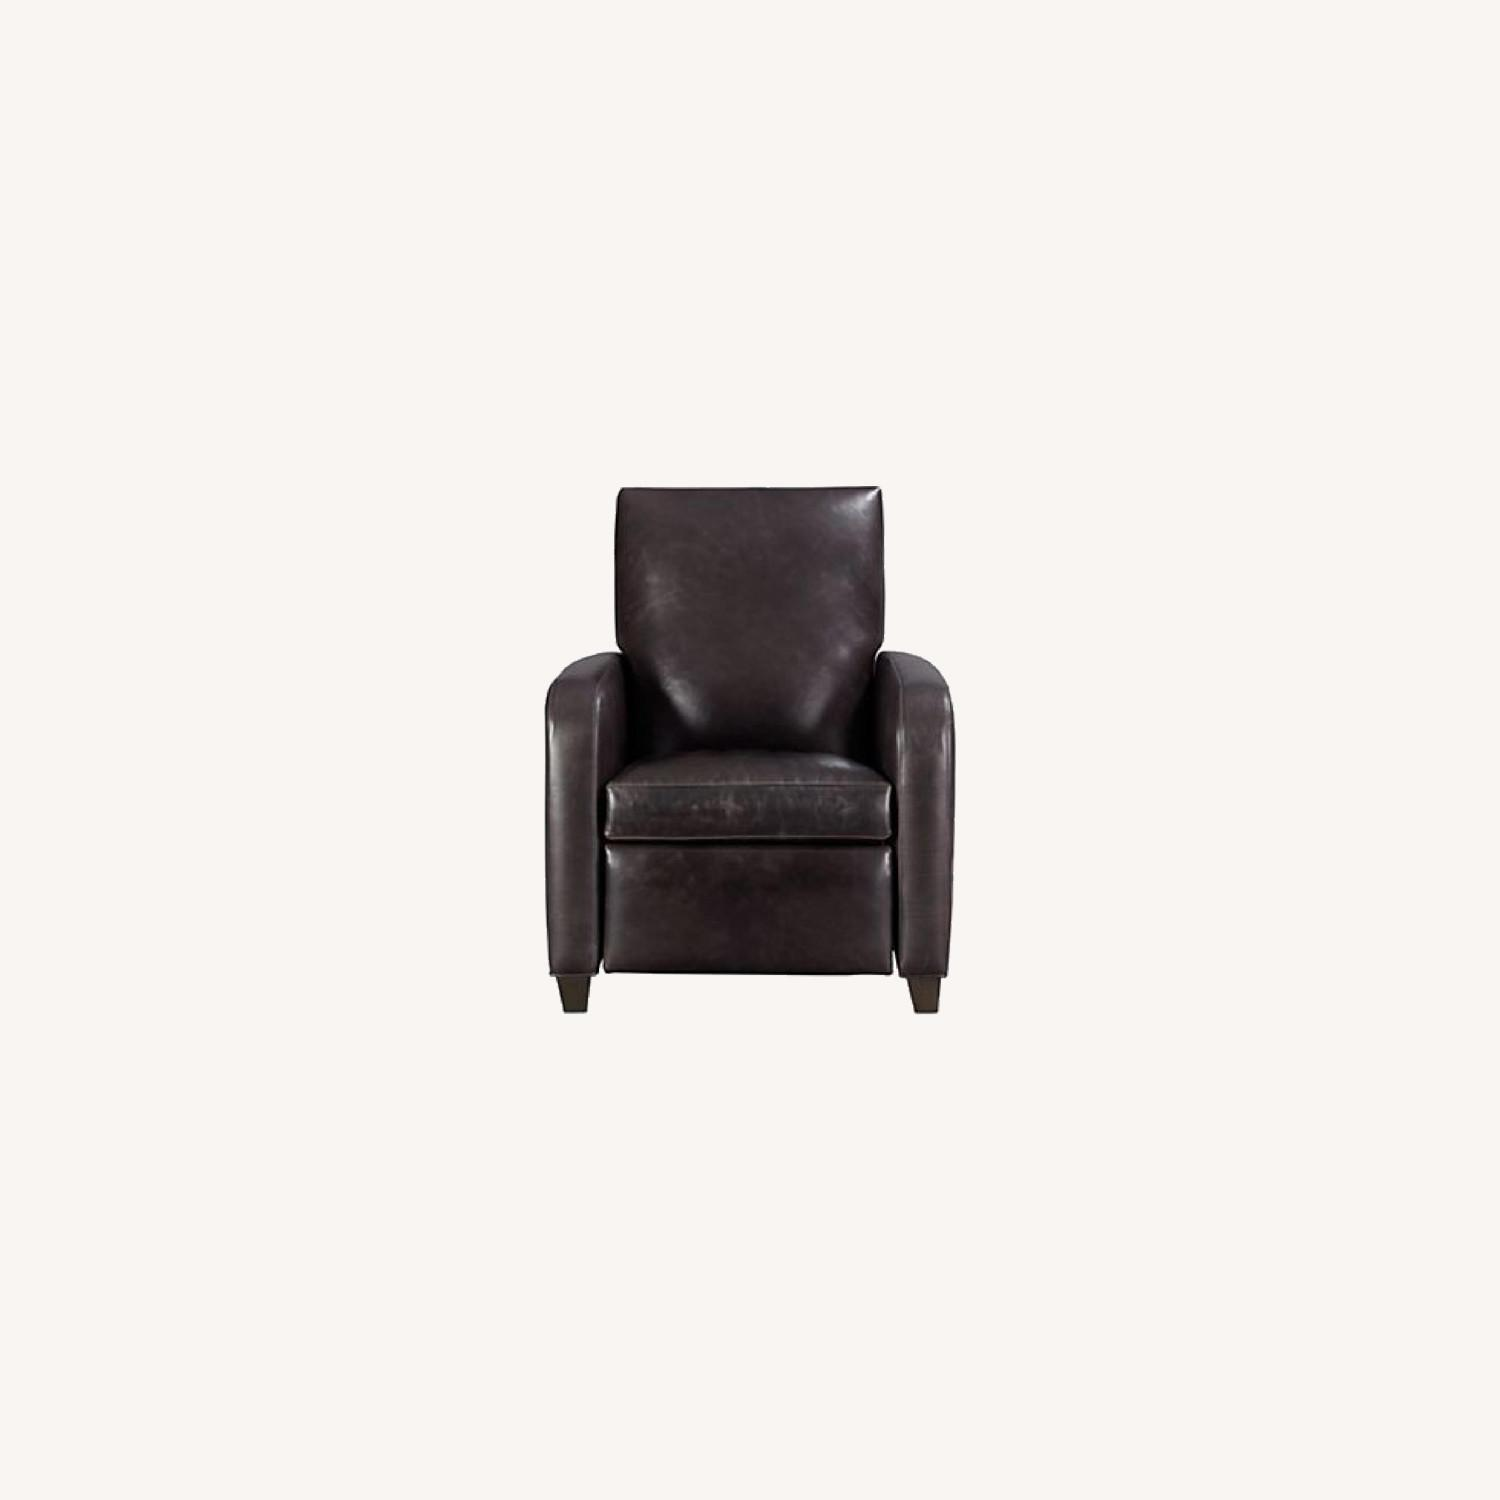 Crate & Barrel Leather Recliner - image-0